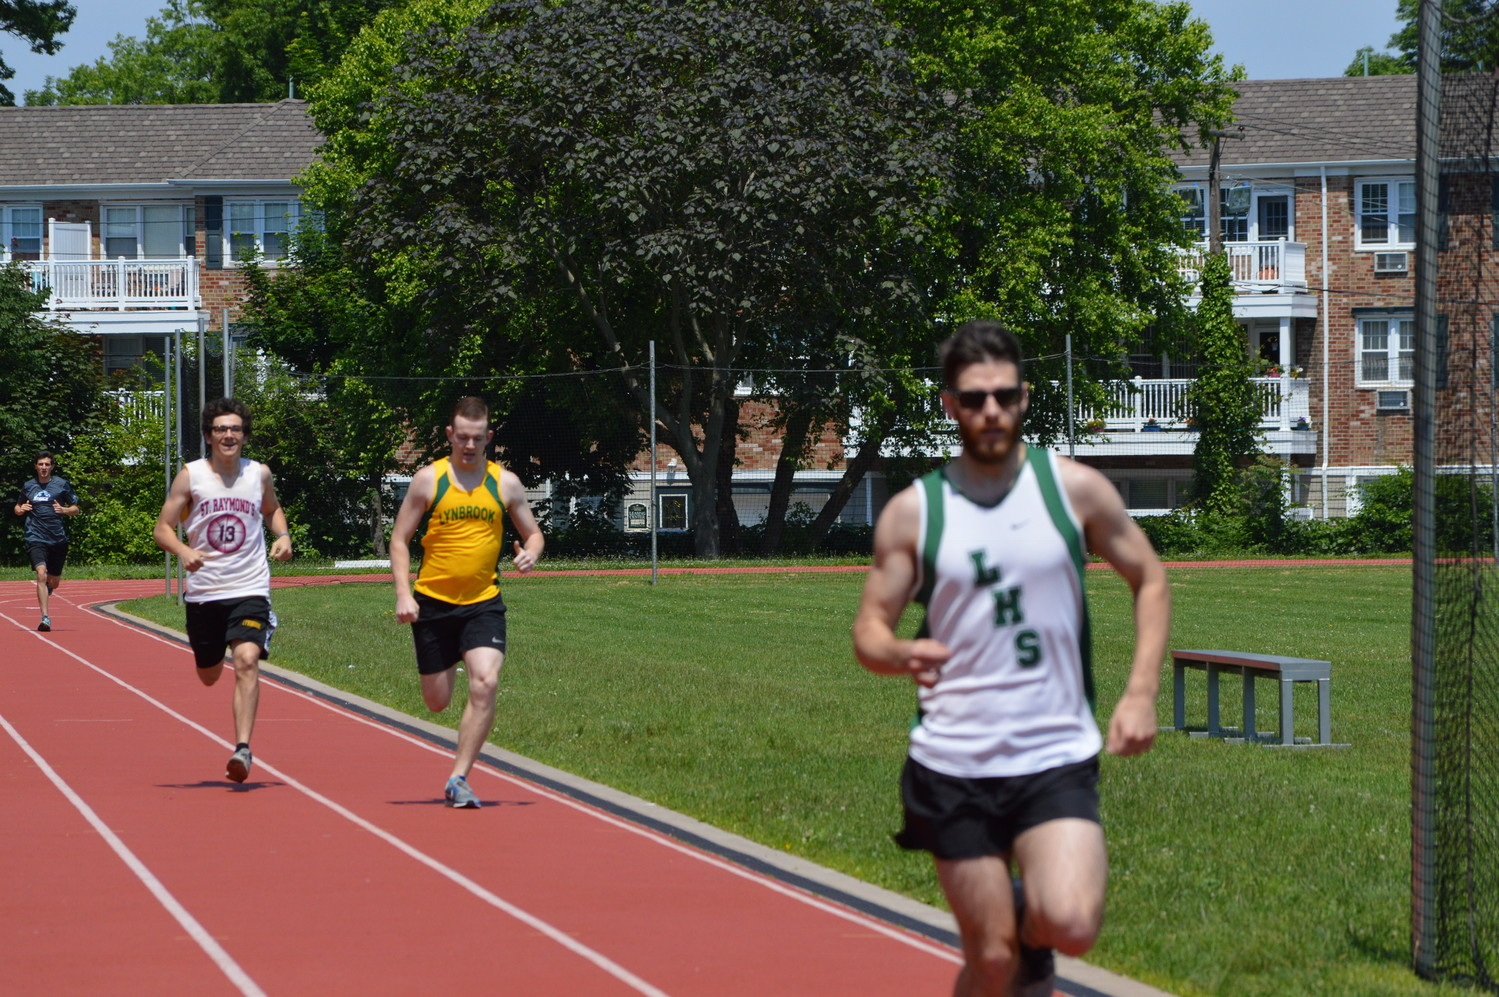 Russell Darren (All-County 2008), front right, won the 800-meter race with Brendan Kelly (All-County 2016), left, and Walter Paskoff (All-County 2018) closely behind him.